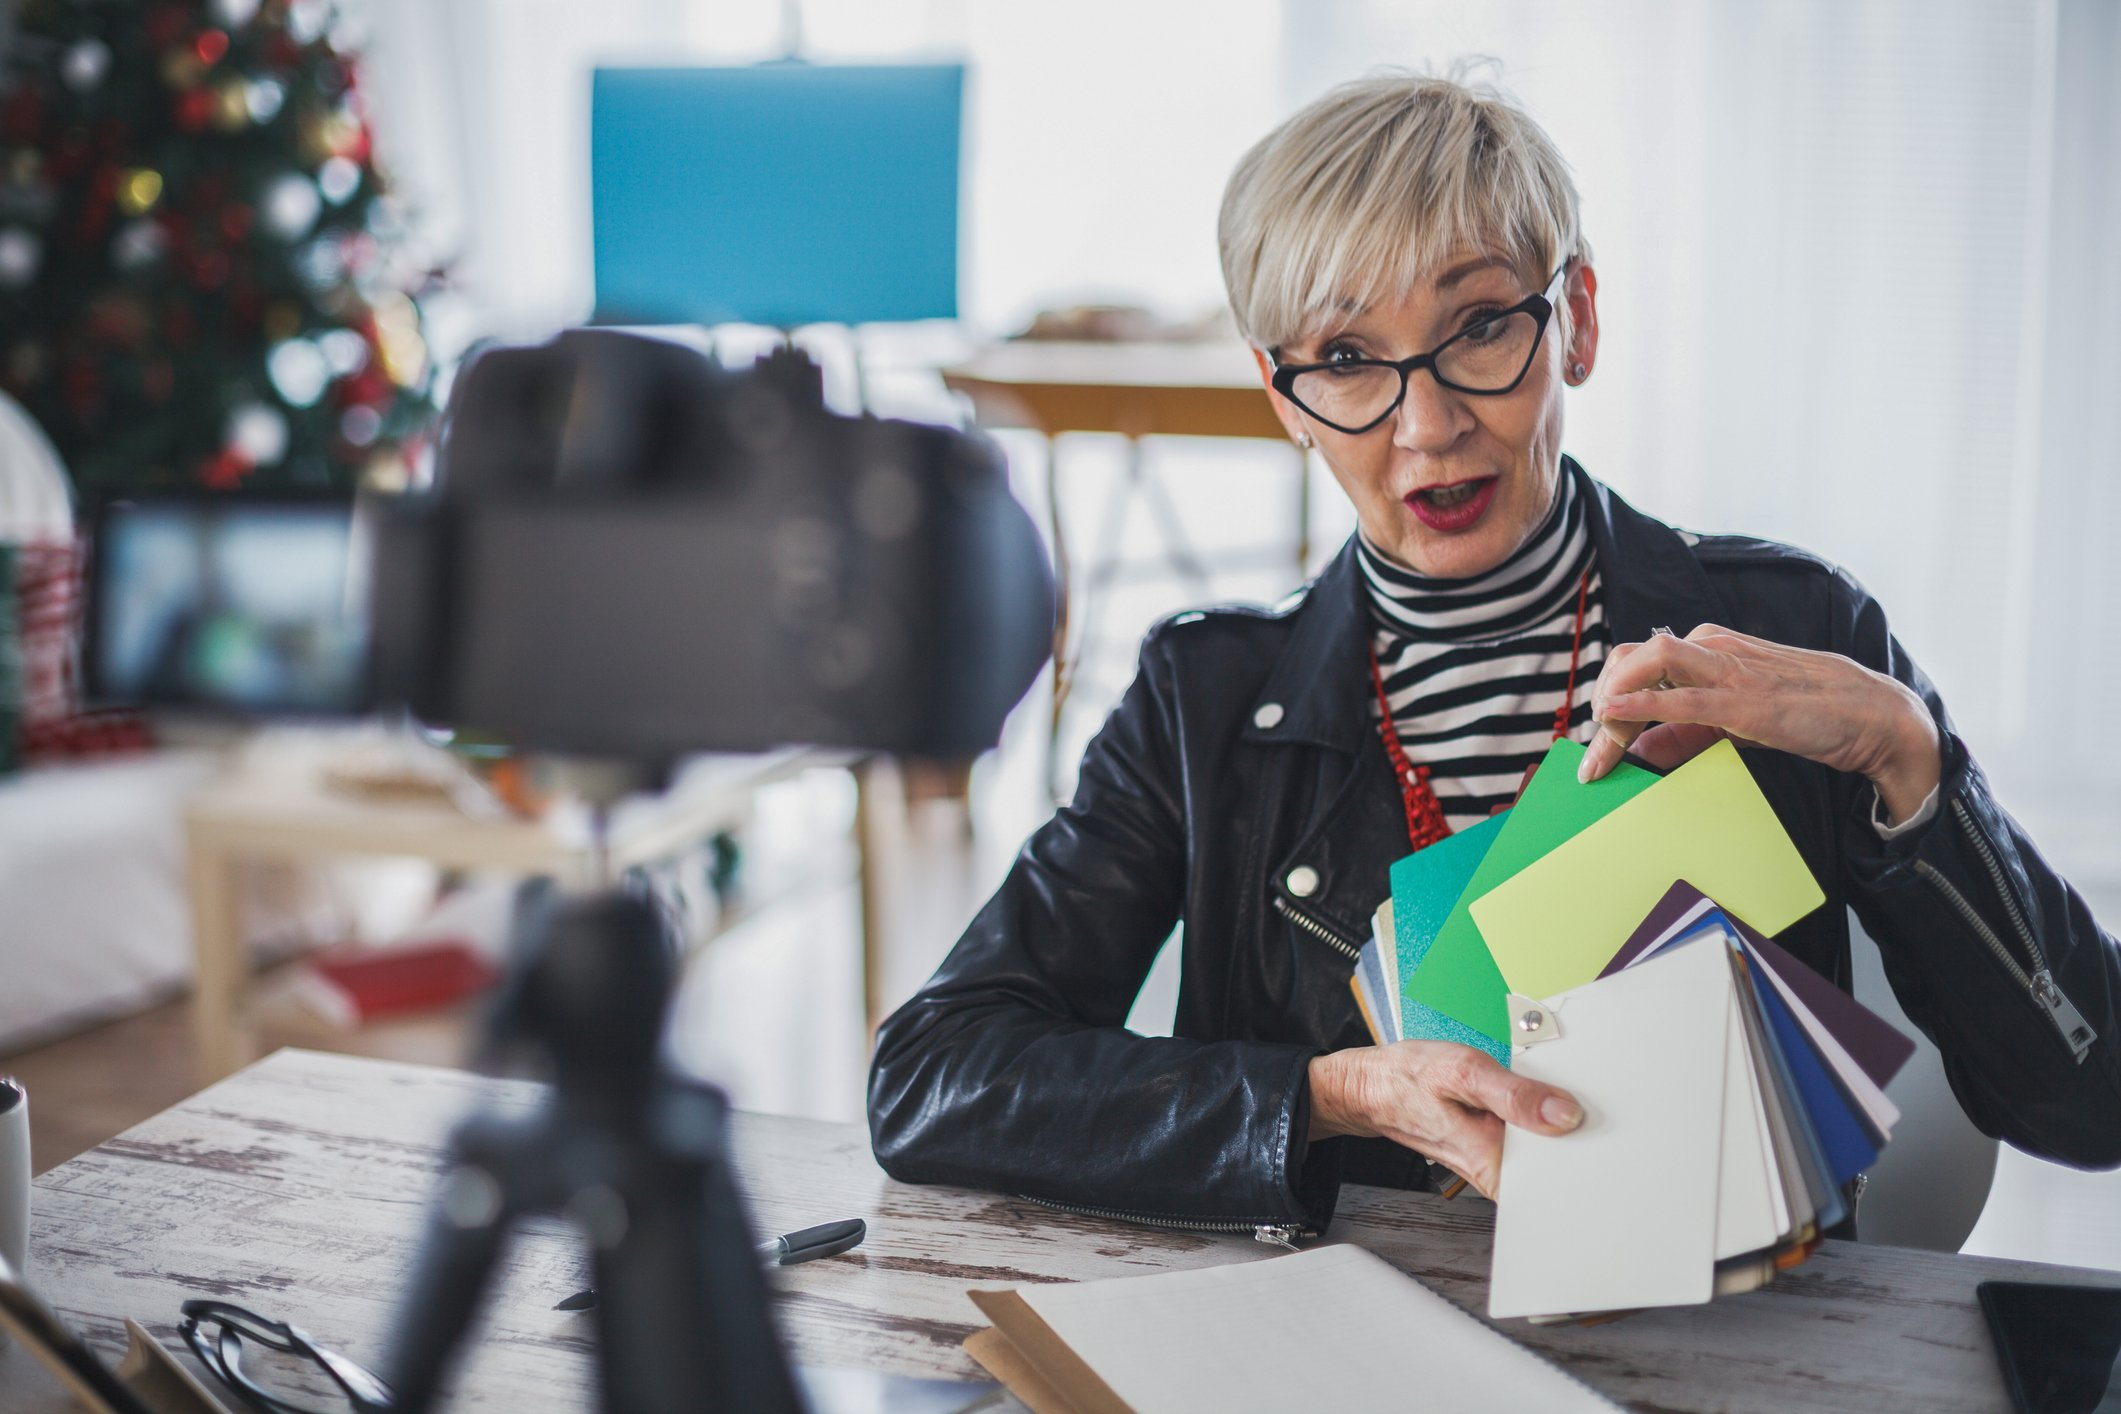 Shot of confident mature female vlogger sitting in her recording studio and showing color swatches to a camera while recording a video for her social media audience.